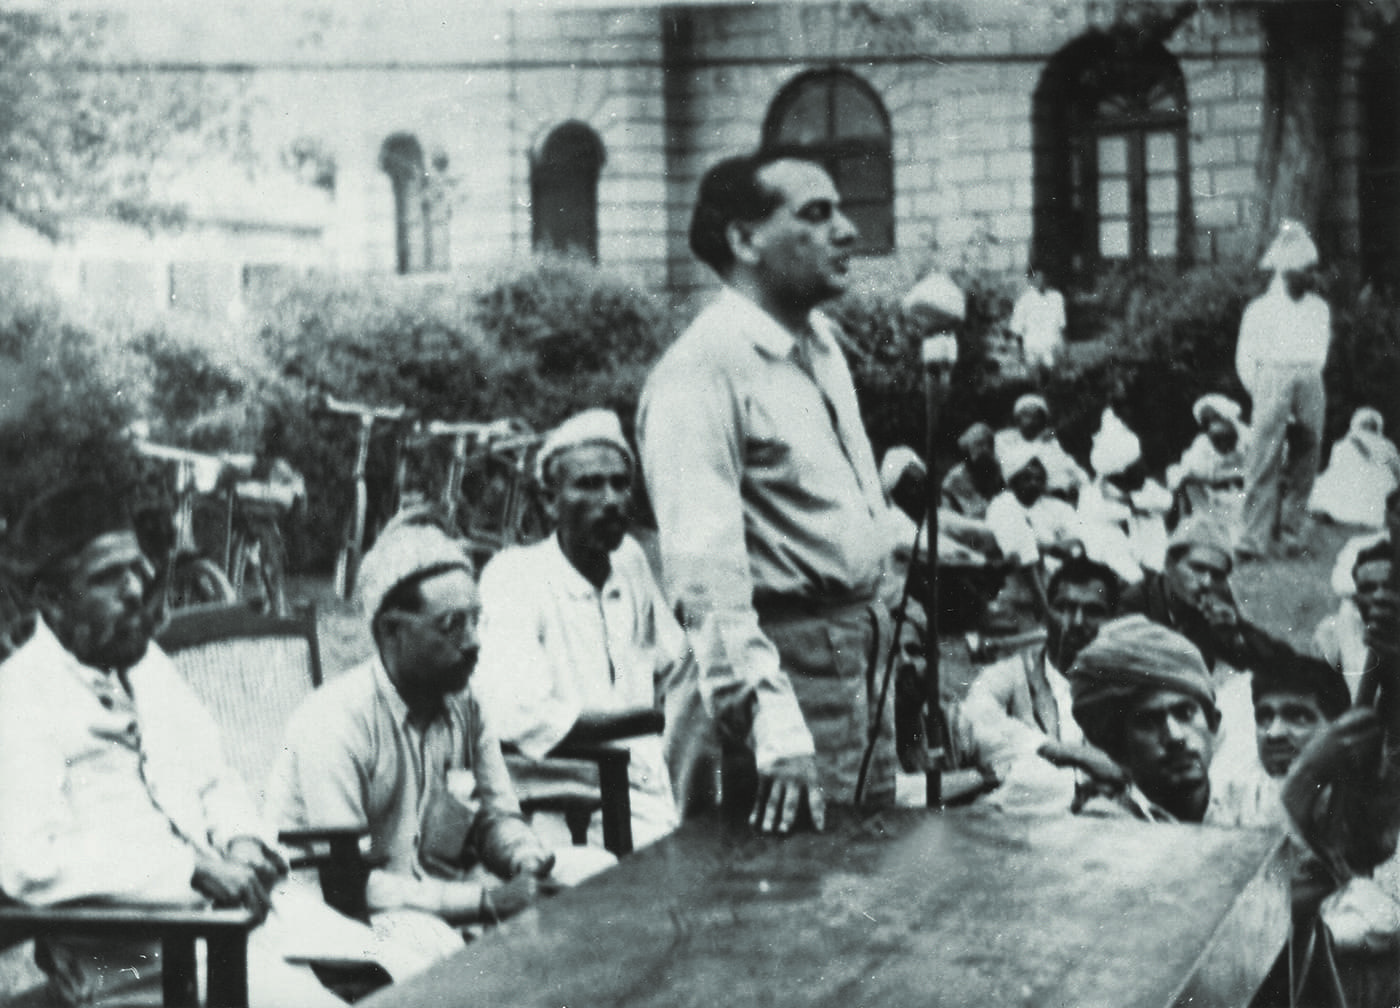 The poet Faiz Ahmed Faiz addresses the members of the Postal Workers Union at the Lahore GPO in 1949. Faiz is president of the PWU, and, during his tenure, he works aggressively towards securing workers' rights. — The Faiz Ghar Archives, Lahore